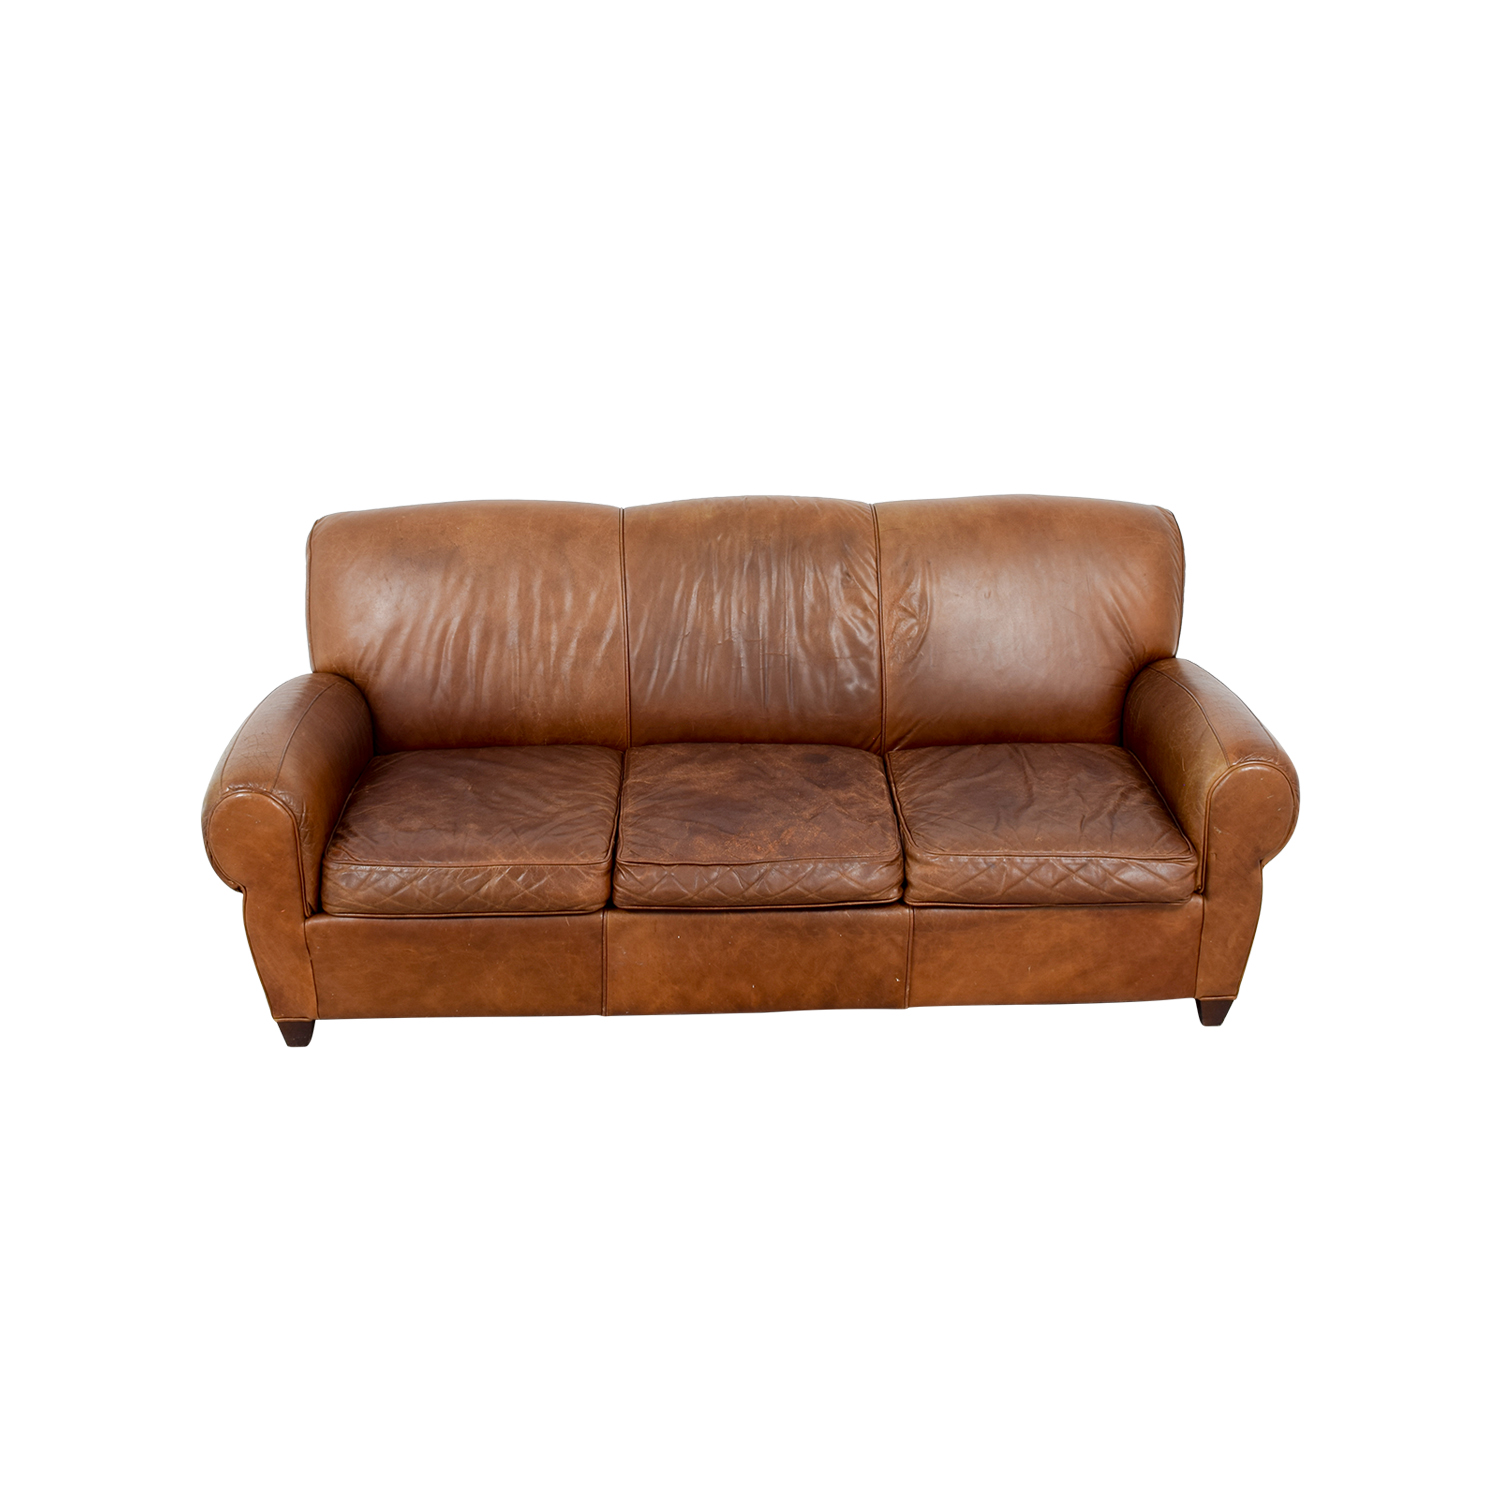 Second hand coupon code for Used leather sofa set